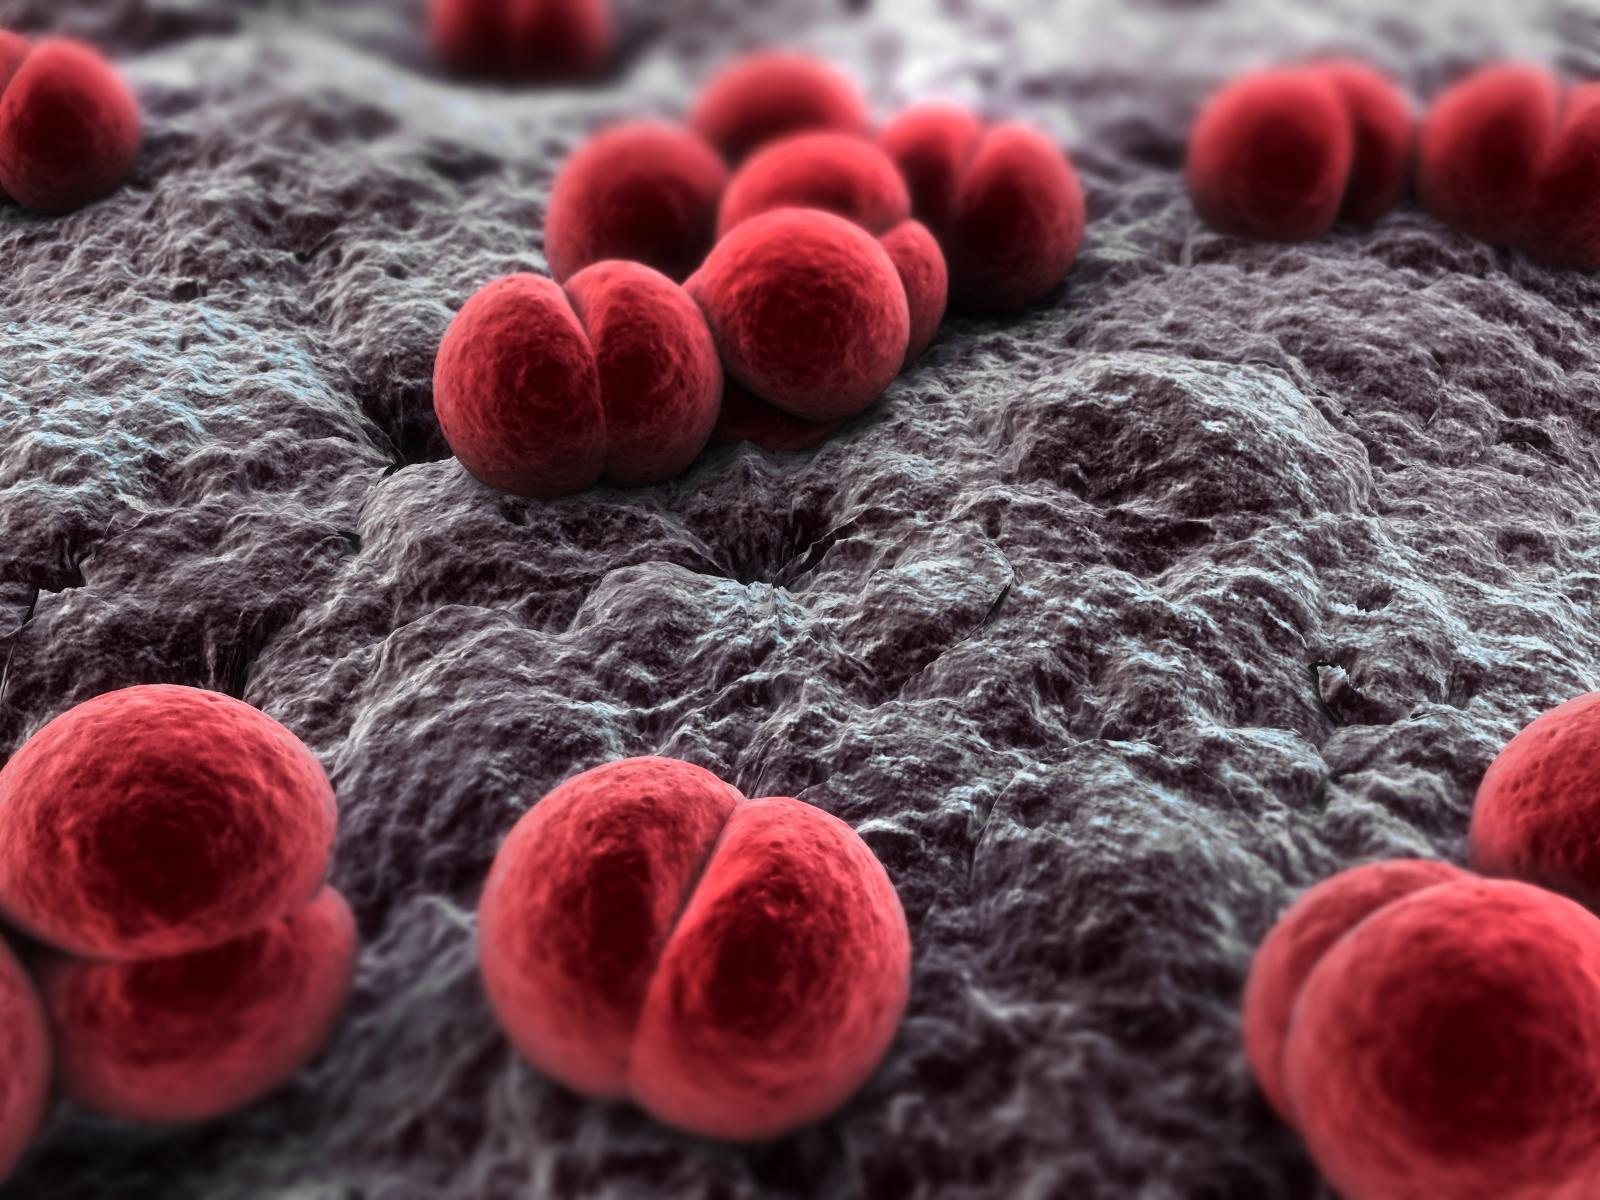 Stock Photo - close up of meningococcus bacteria